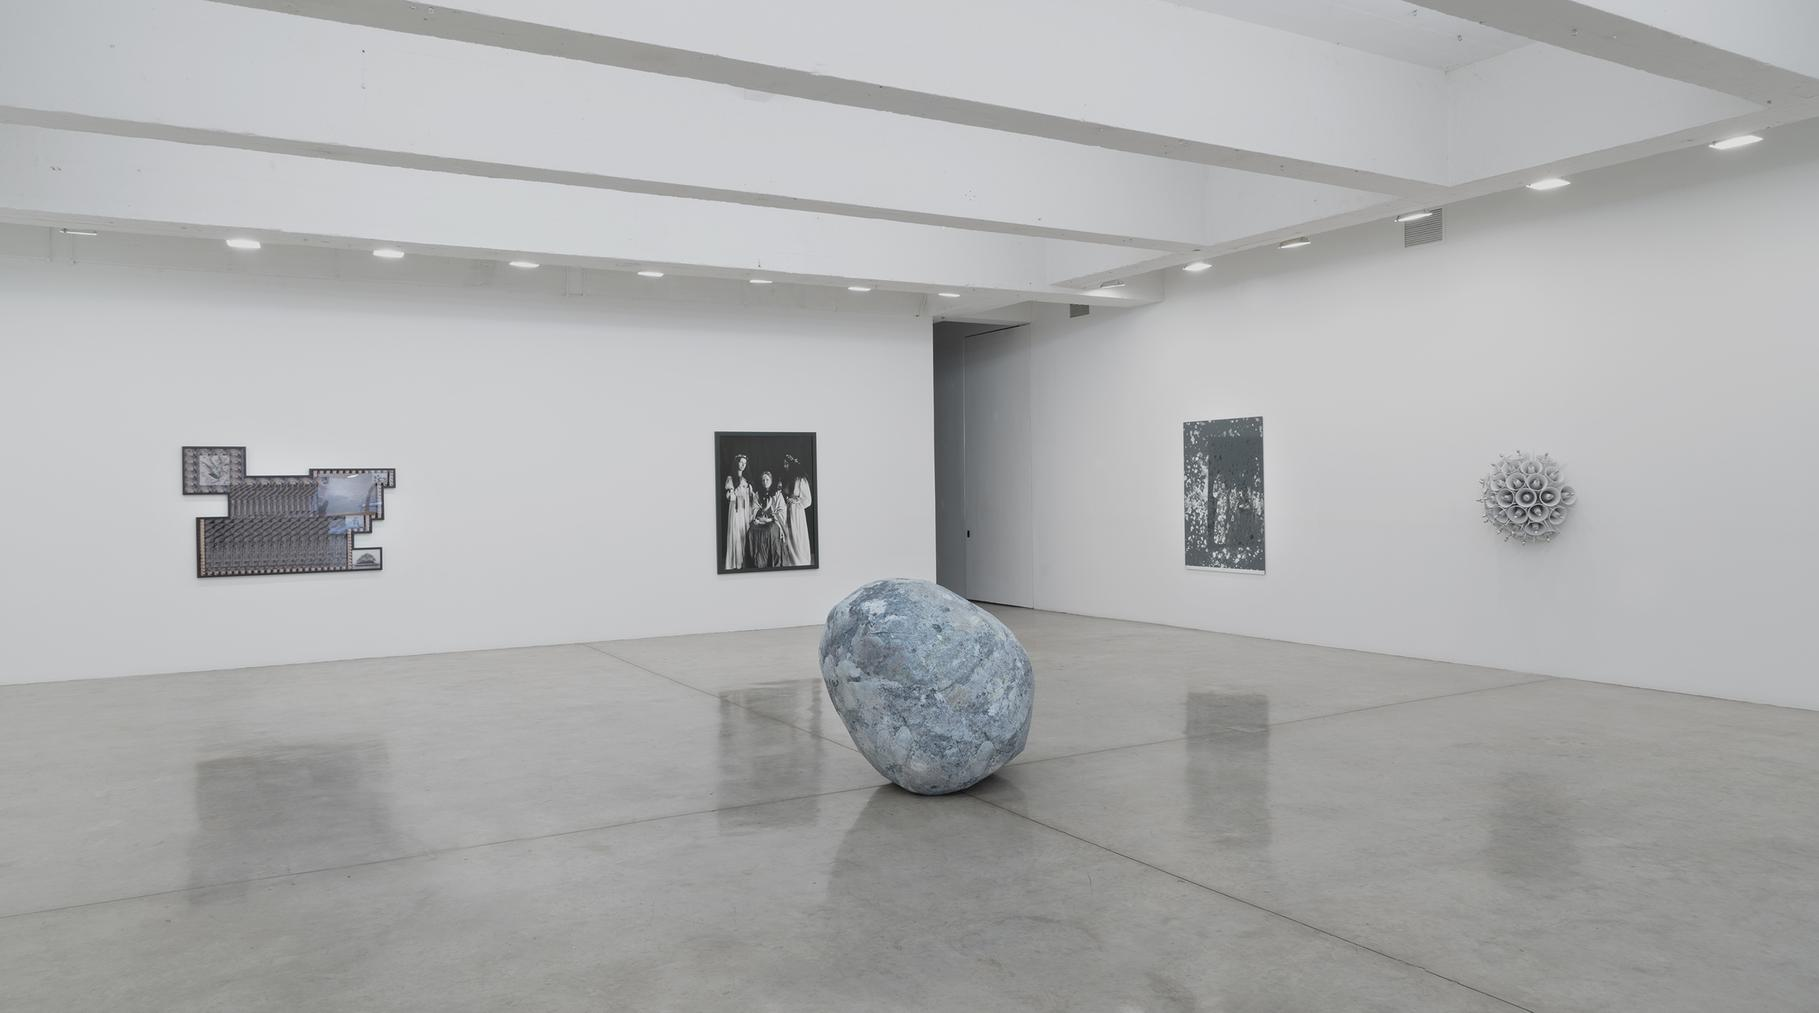 Installation view of The Return of the Real